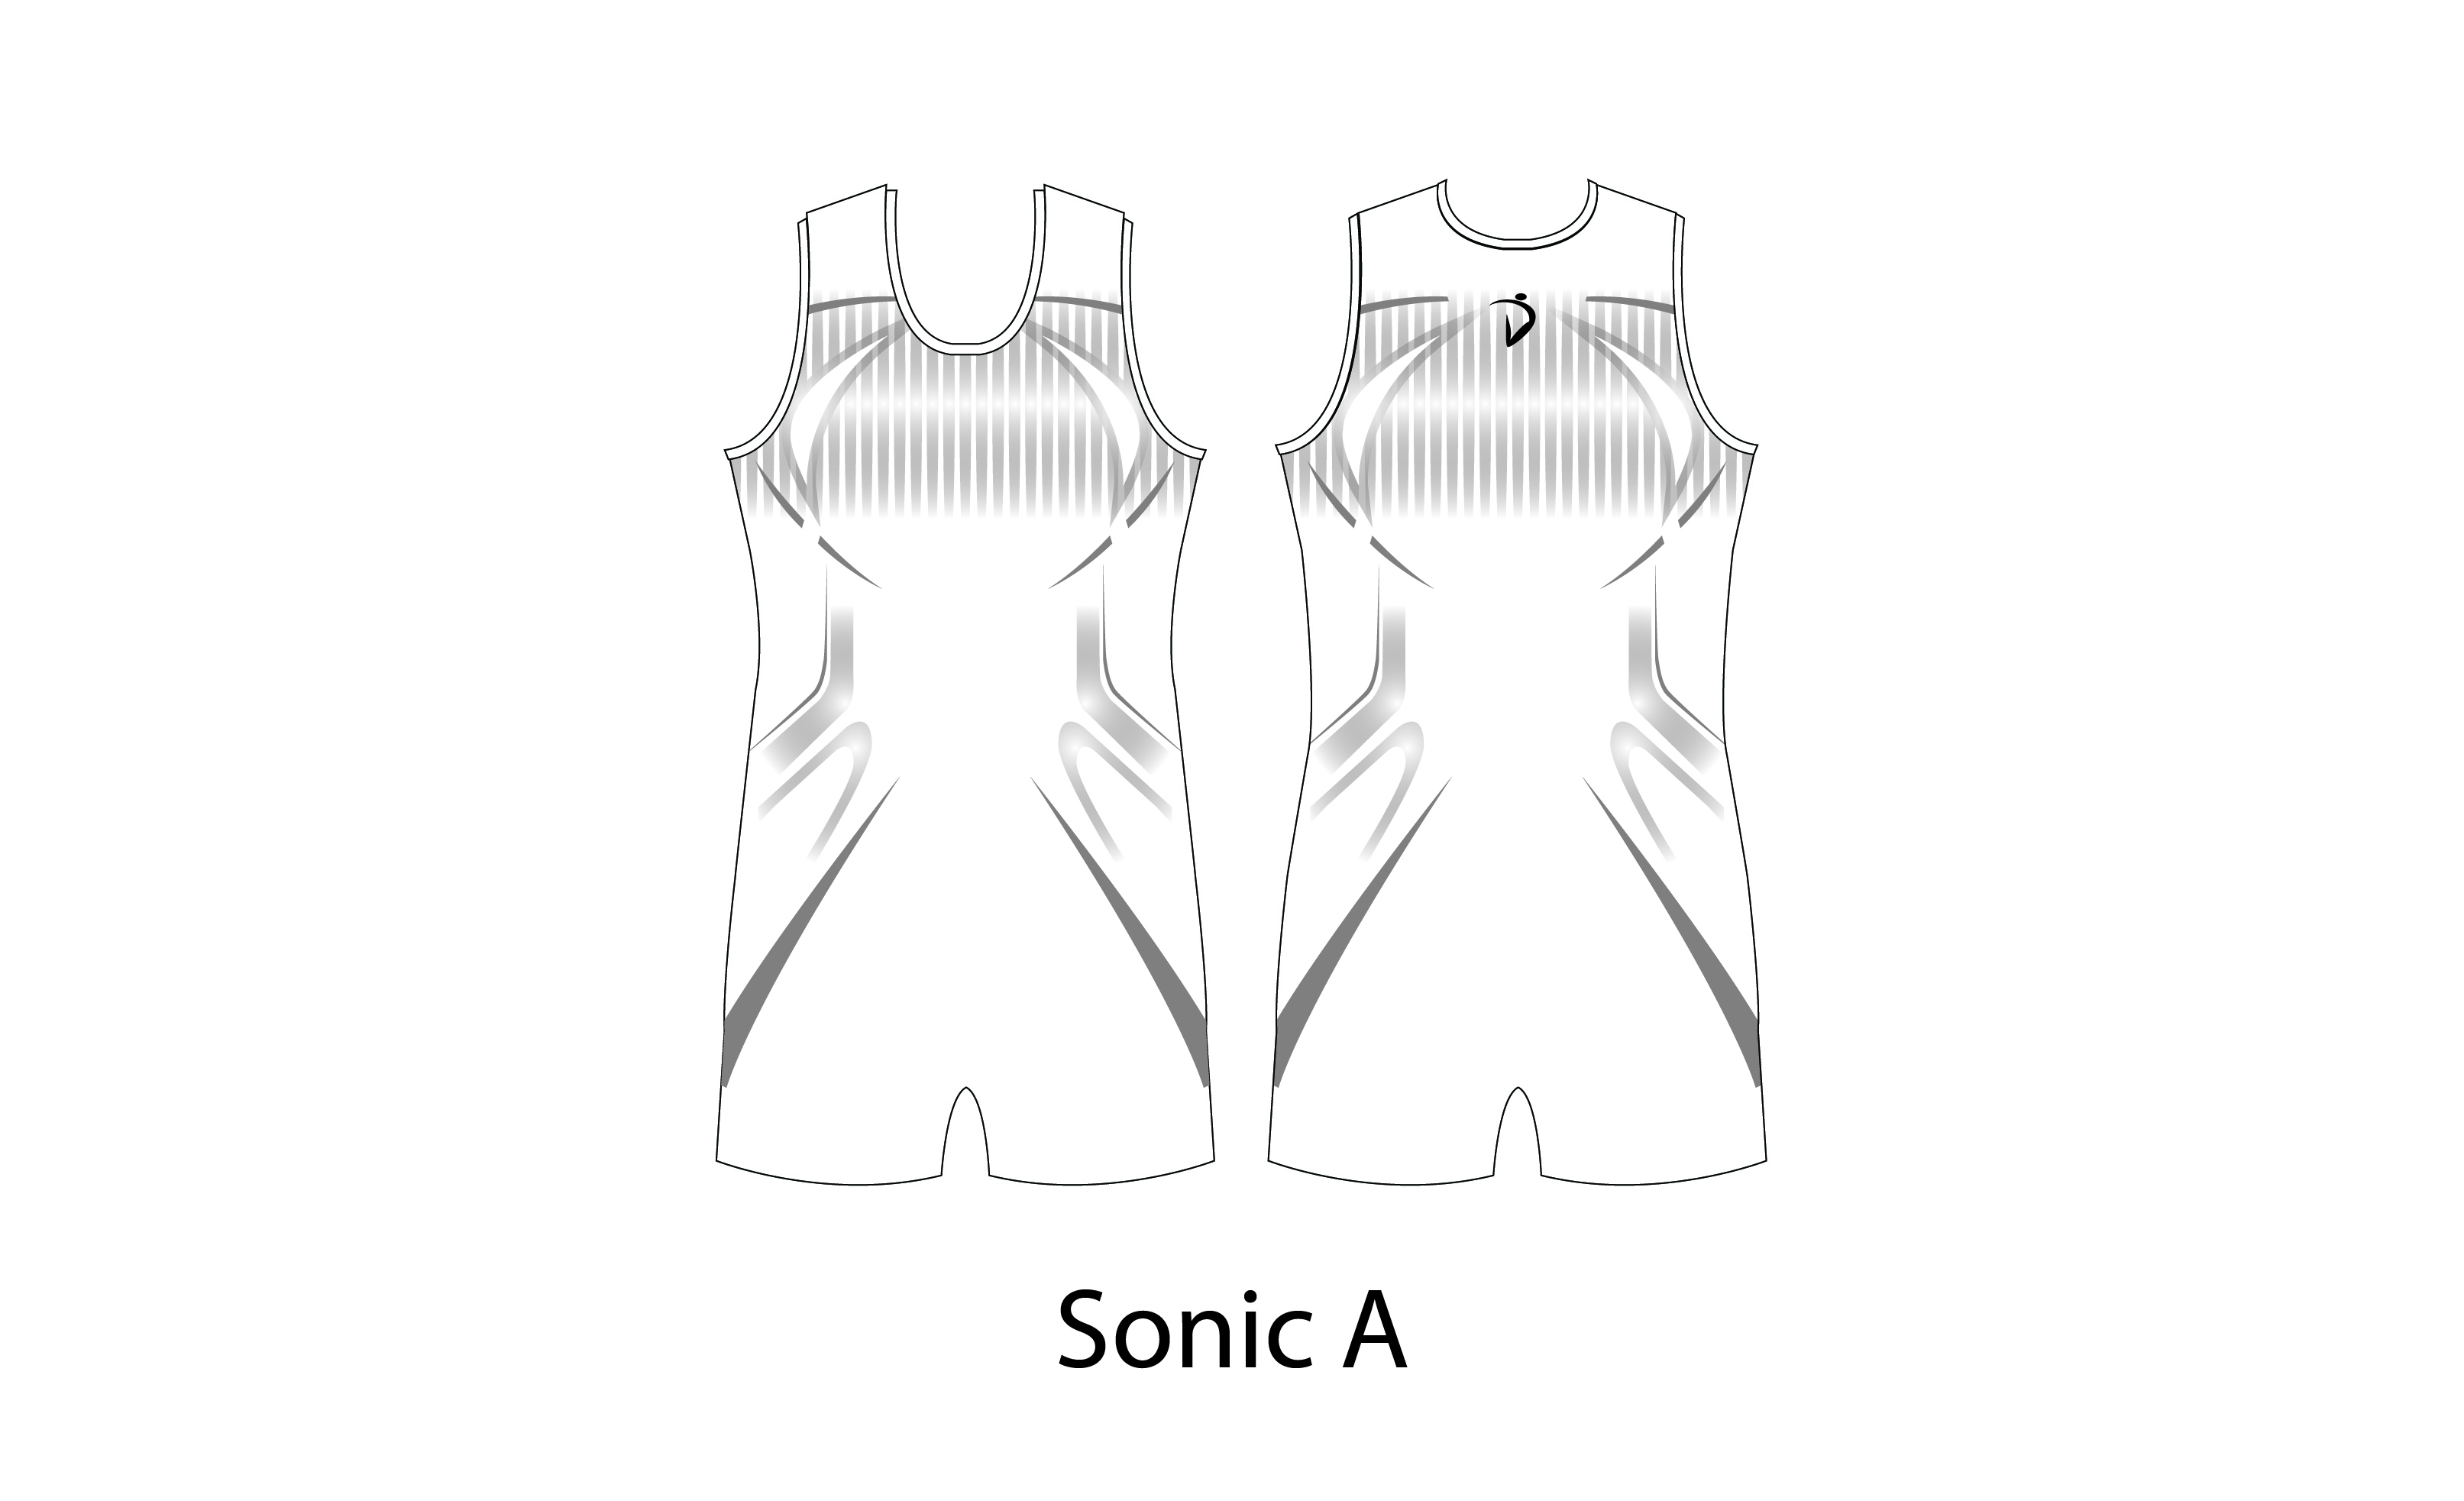 Sonic A